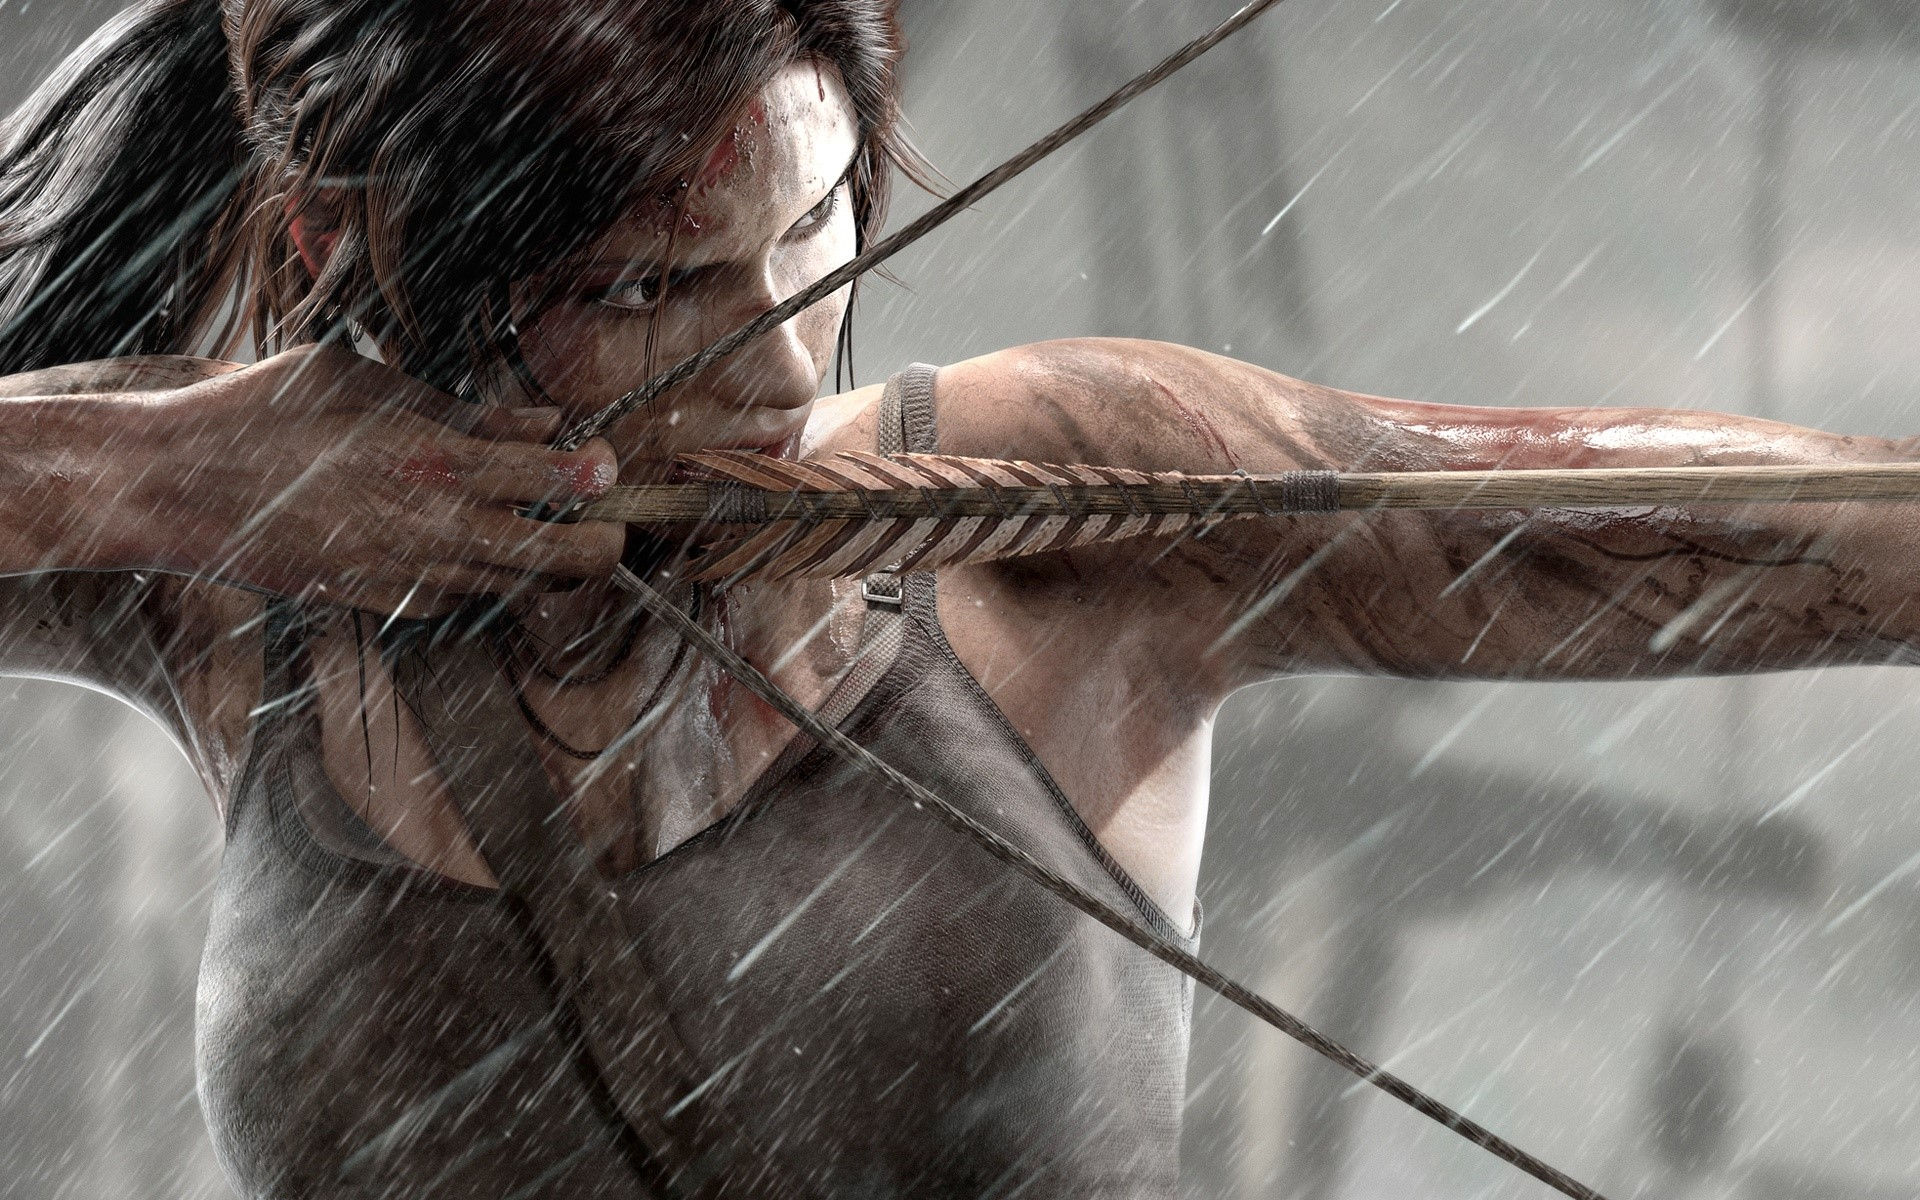 Wallpaper New Lara croft 2013 Images